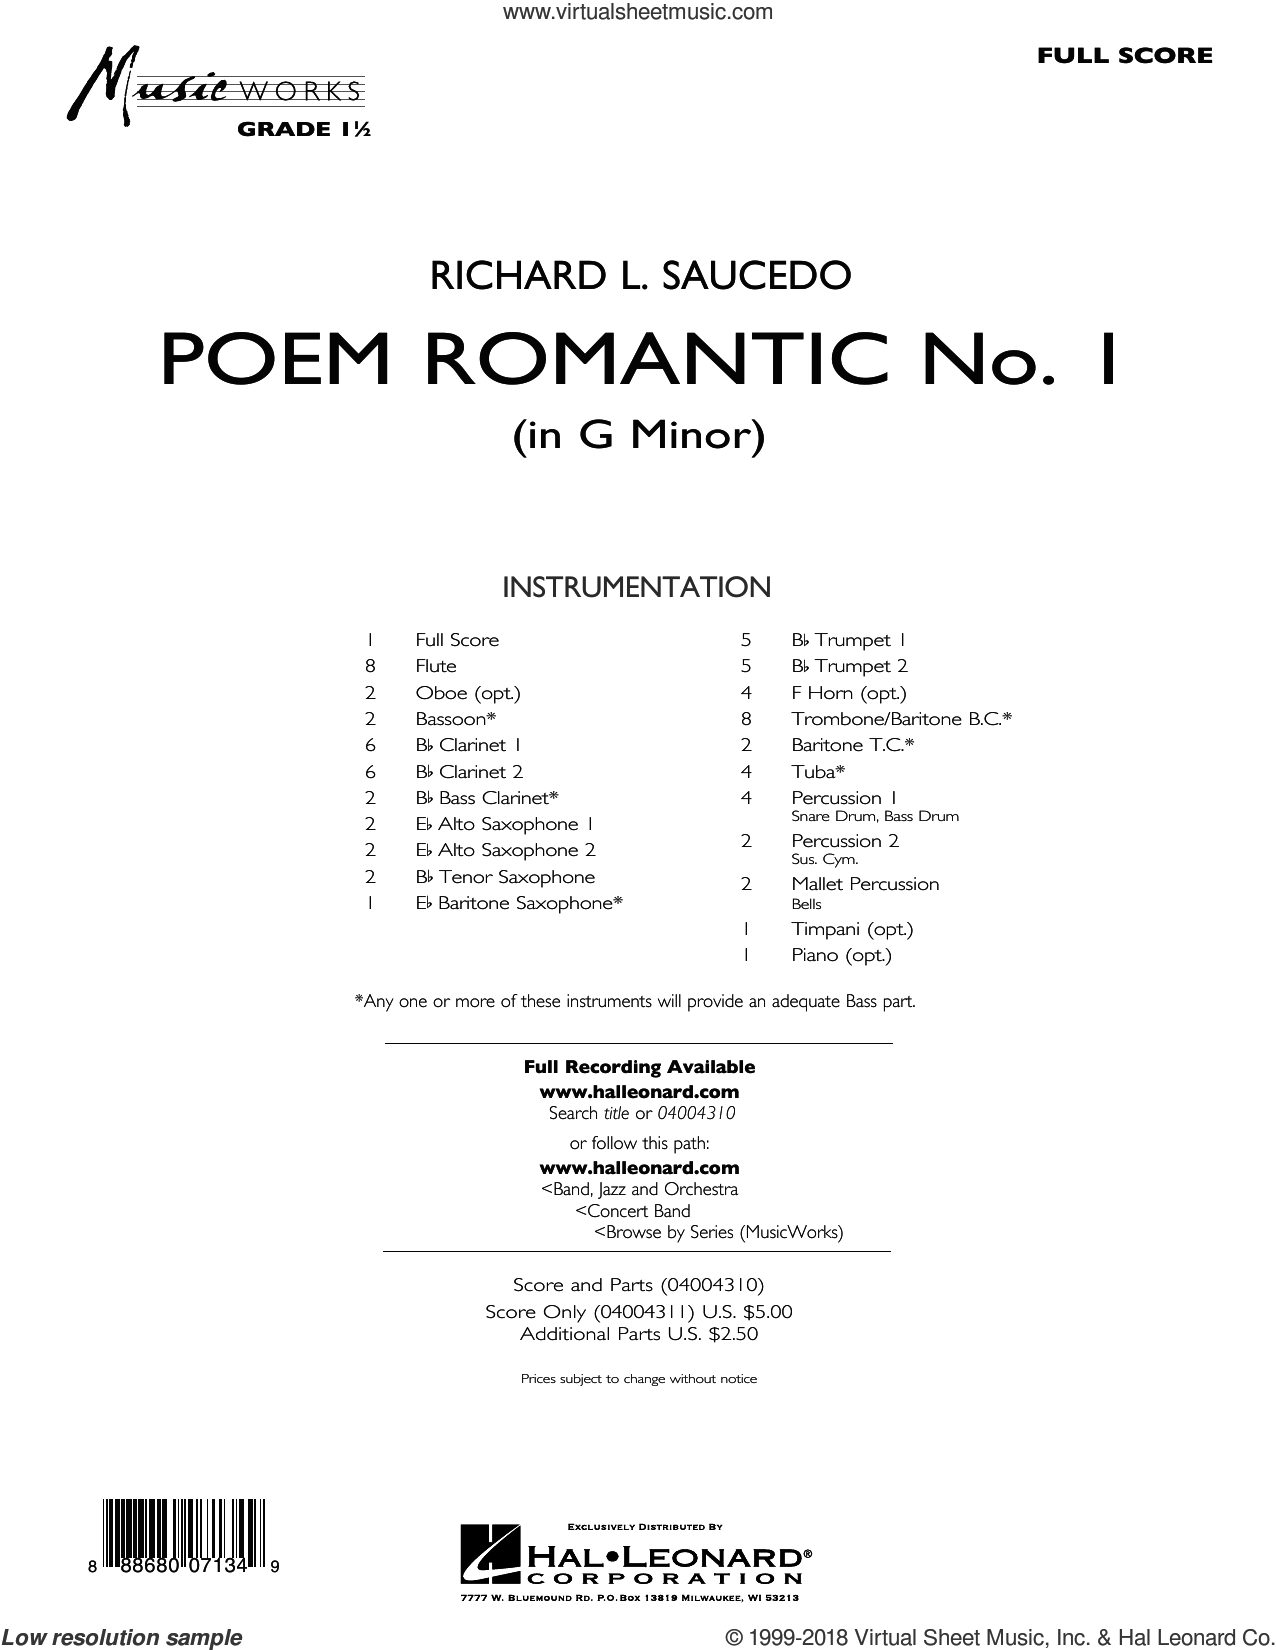 Poem Romantic No. 1 (in G Minor) (COMPLETE) sheet music for concert band by Richard L. Saucedo, intermediate skill level